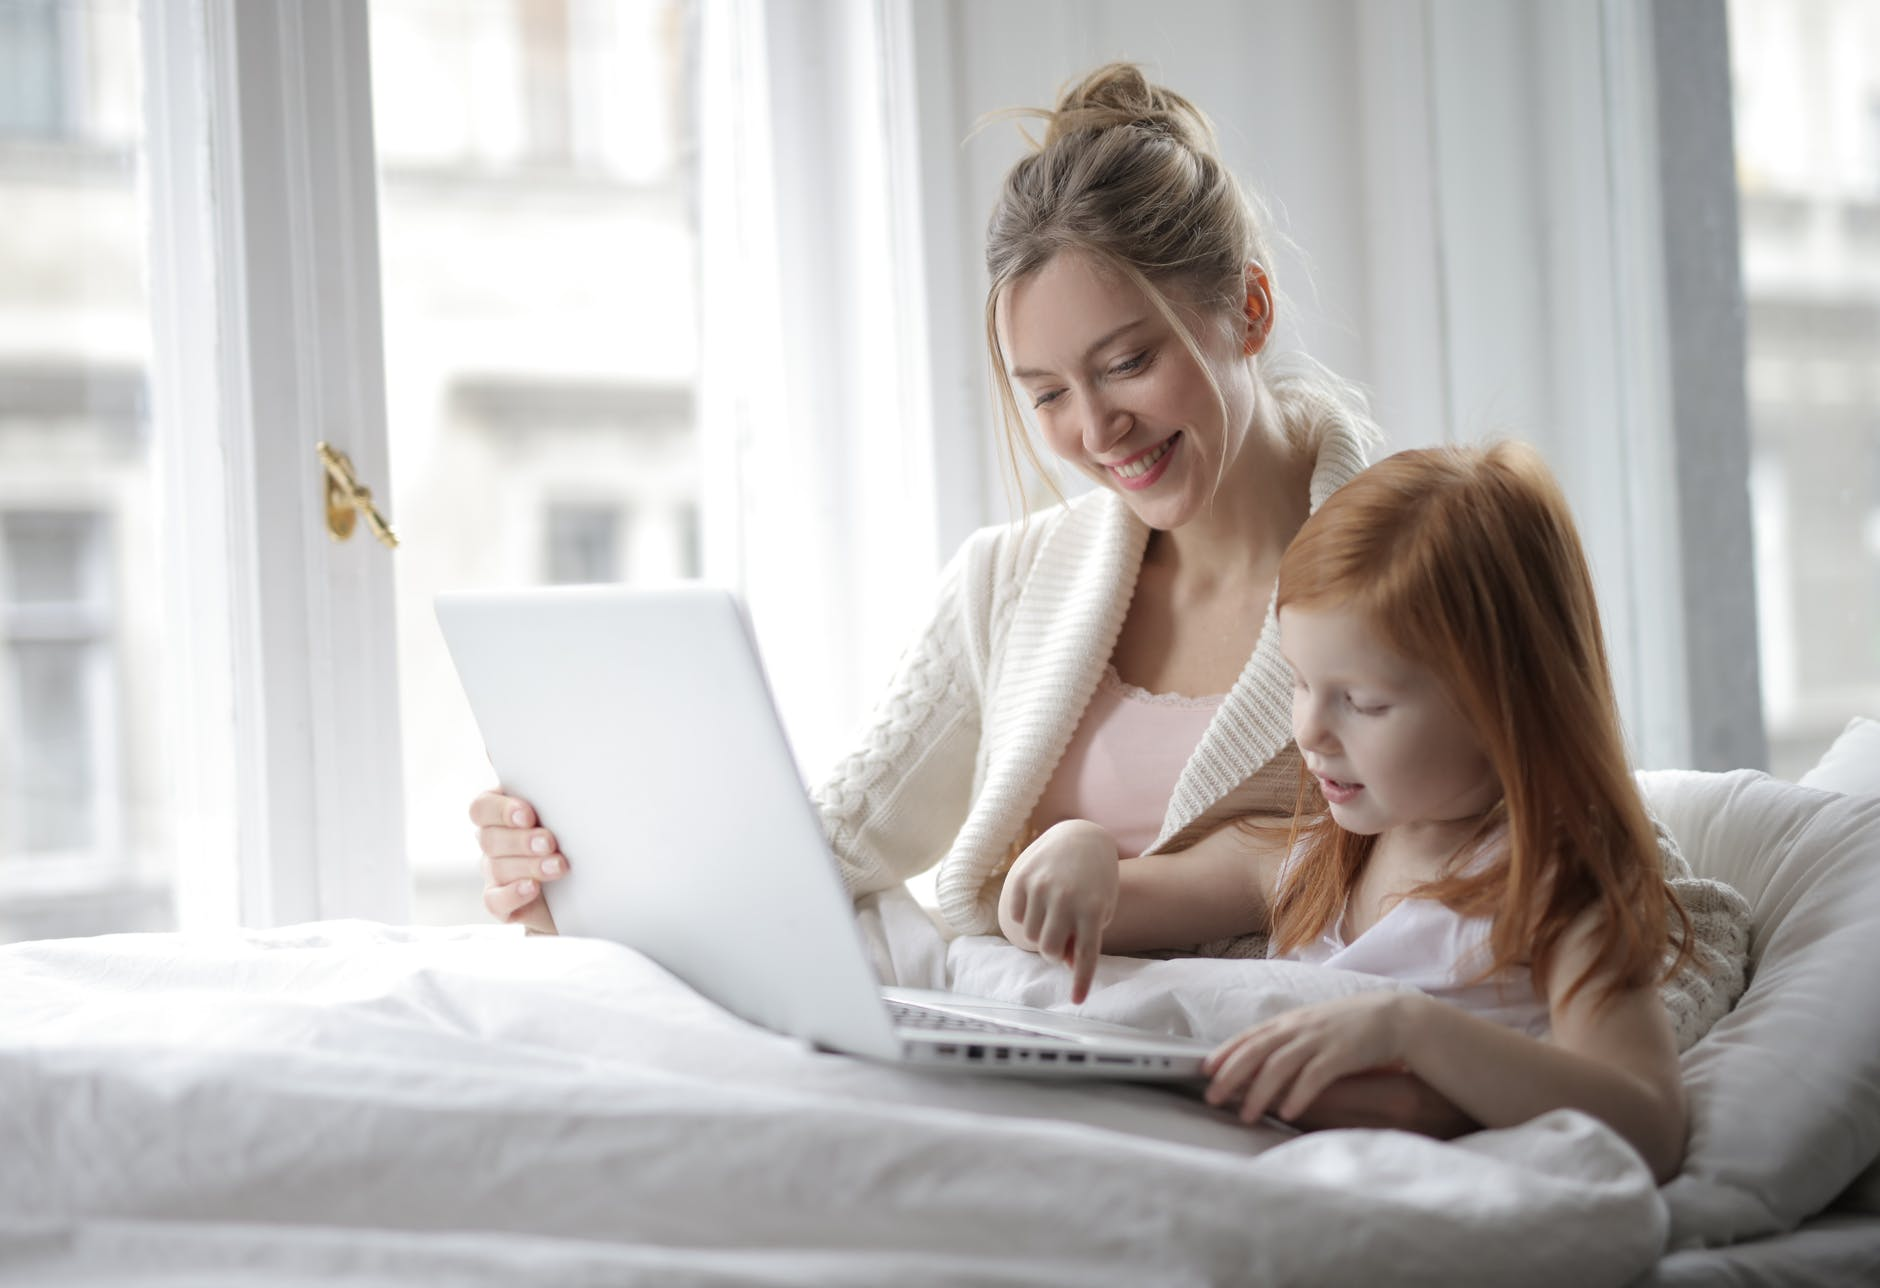 Mom and child looking at laptop under blanket